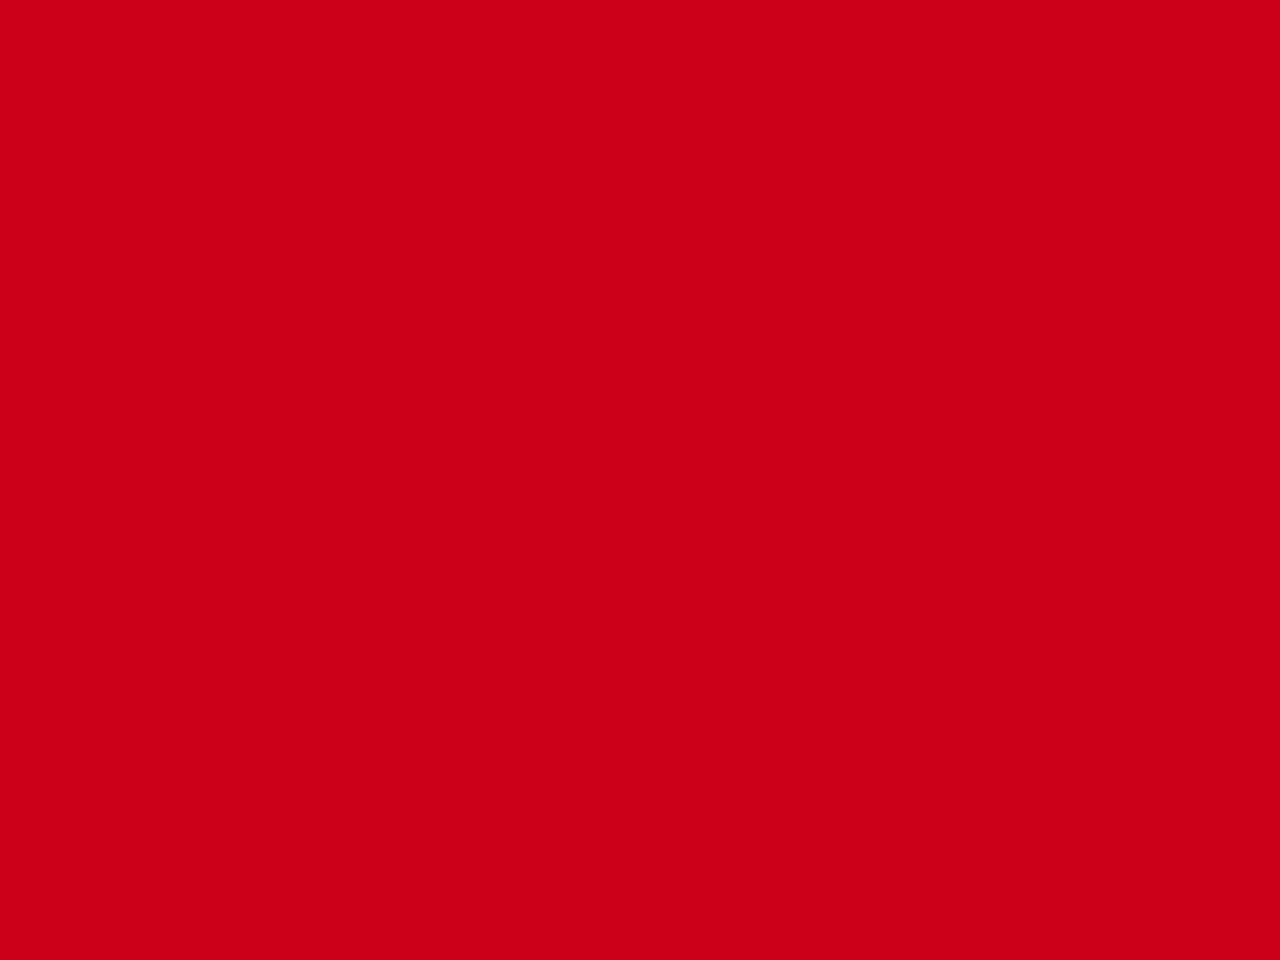 1280x960 Harvard Crimson Solid Color Background